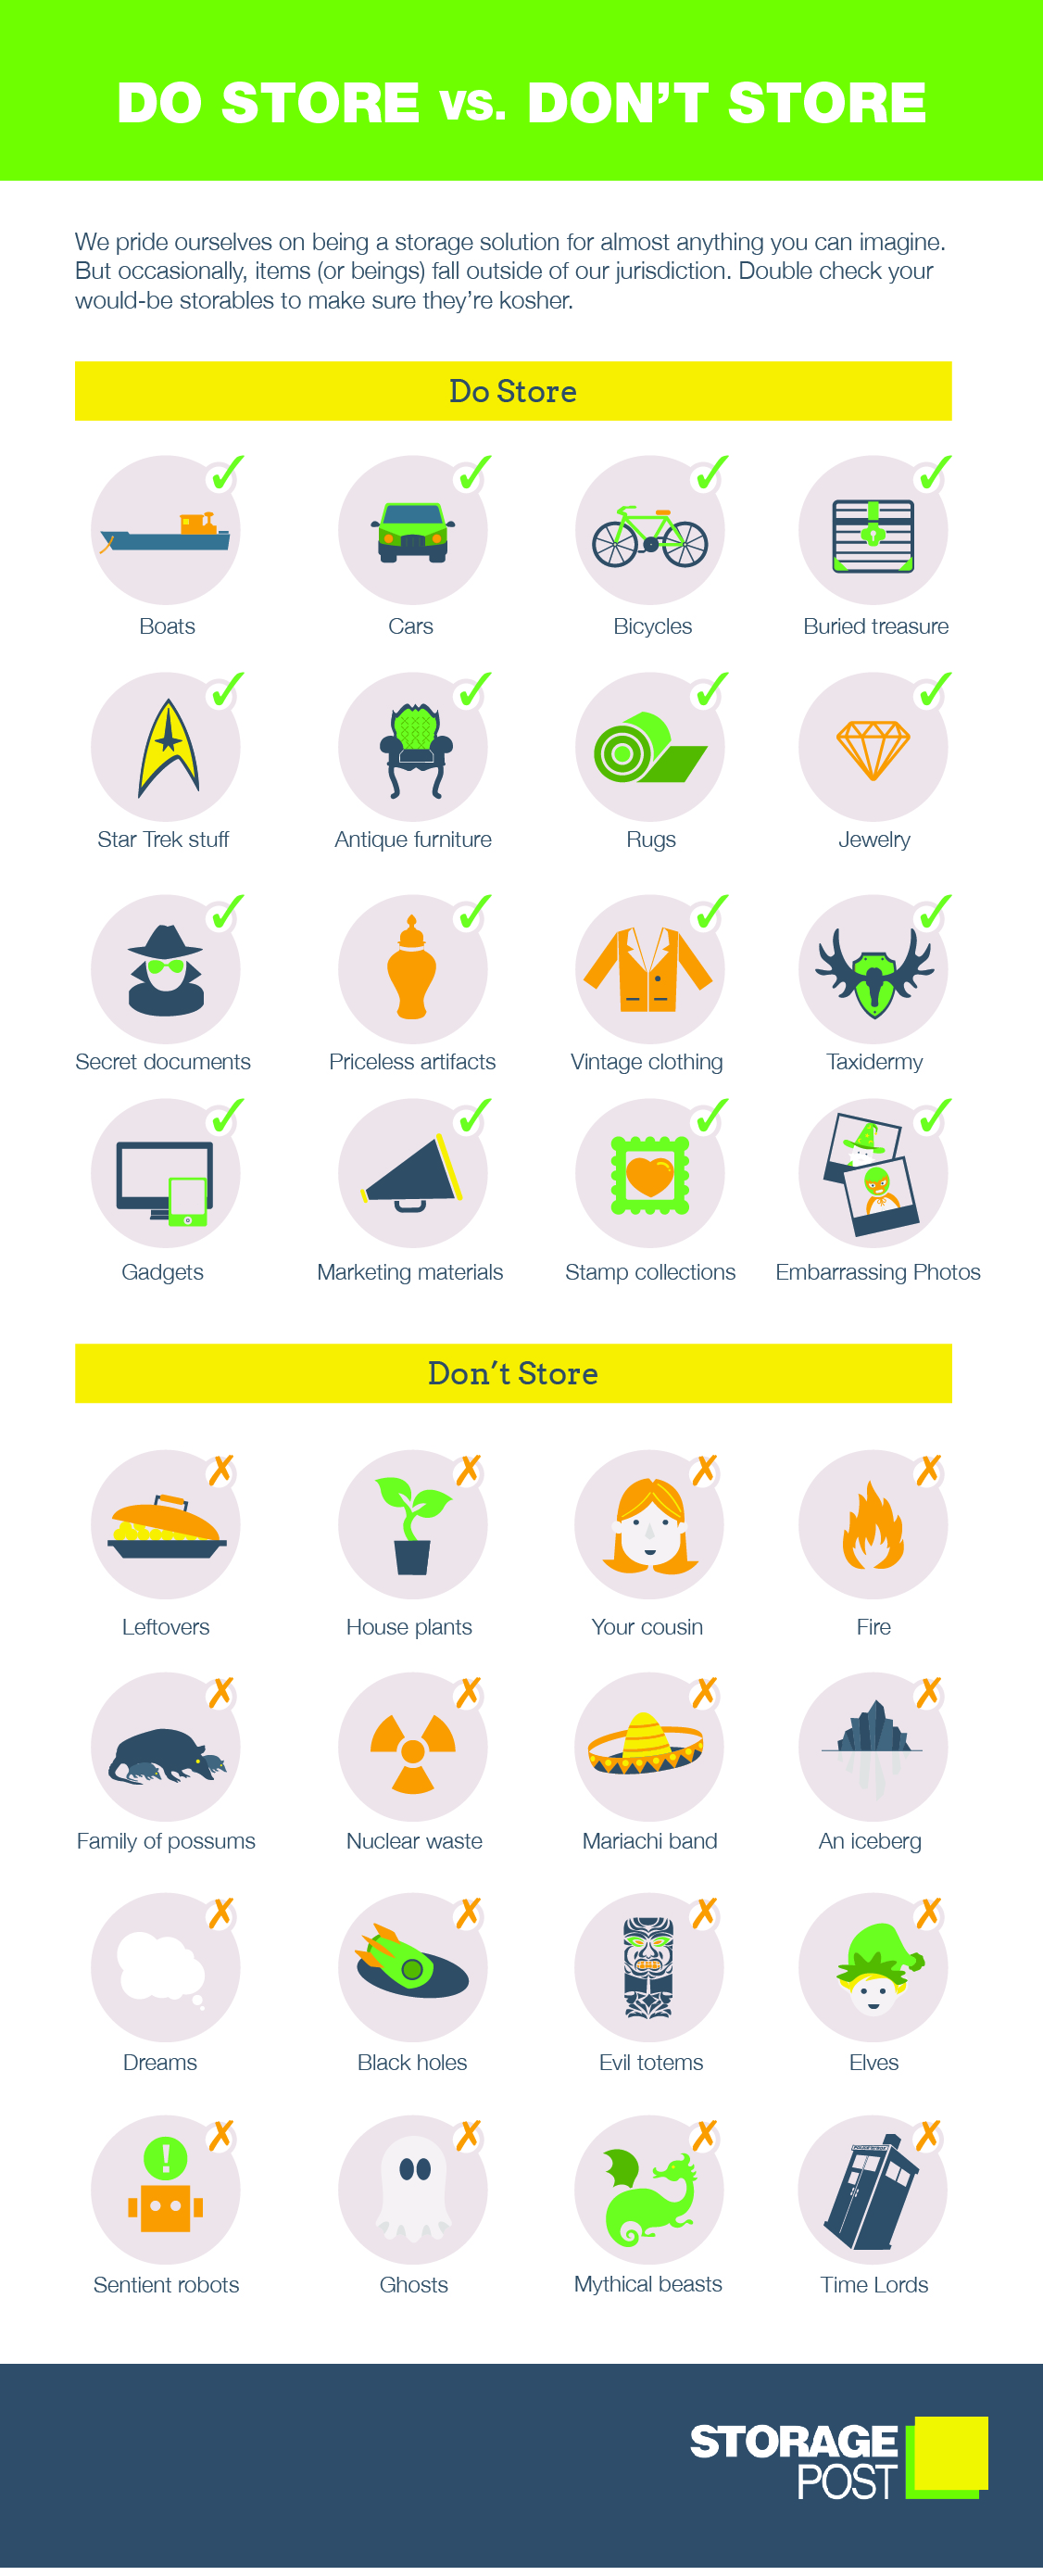 Do store, don't store infographic